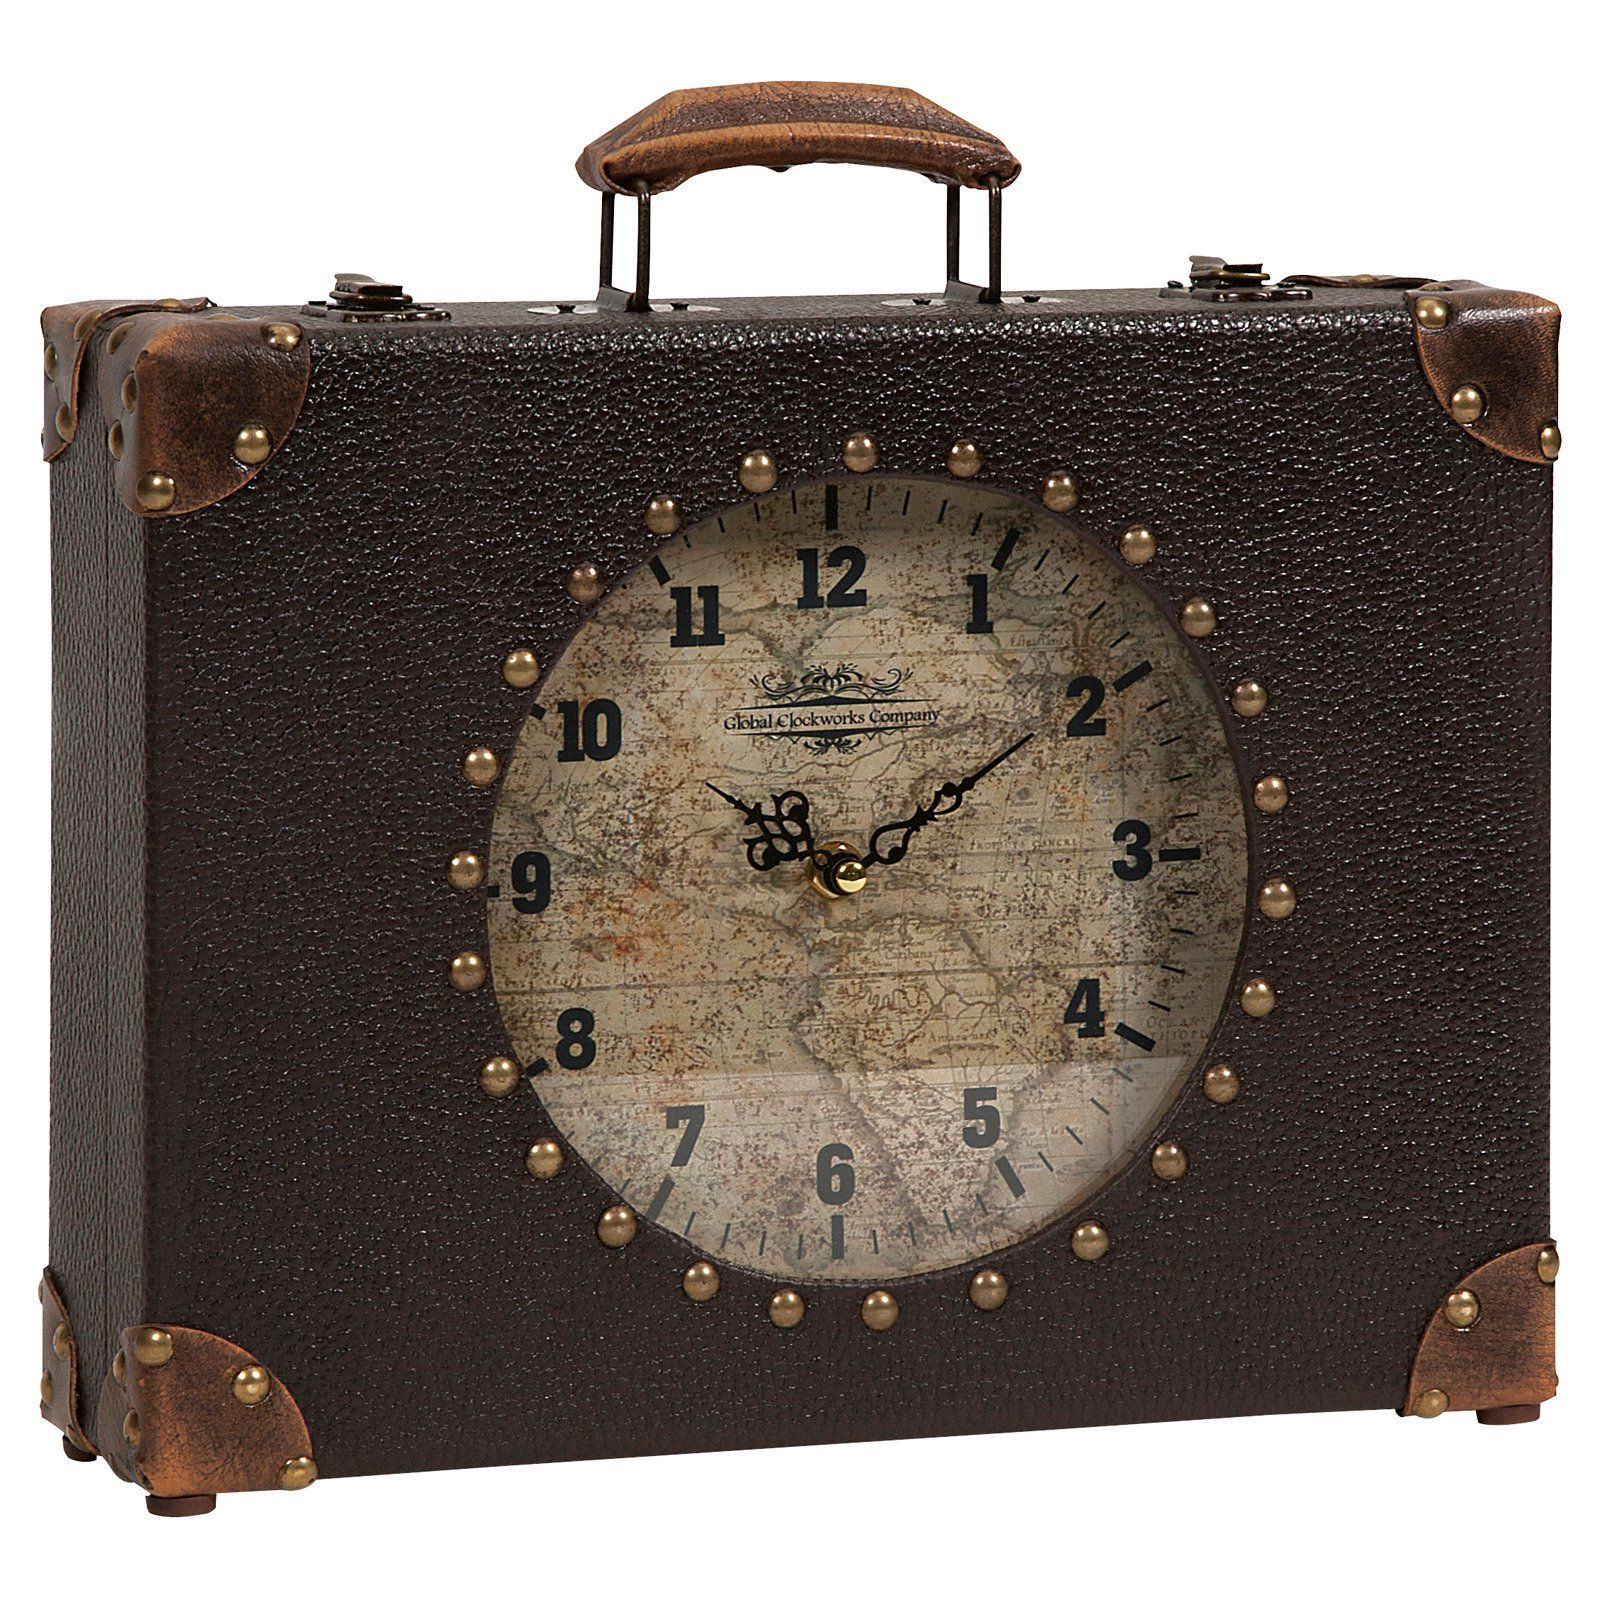 World map suitcase clock pinterest suitcase and clocks world map suitcase clock the perfect size for a desktop mantel or shelf the world map suitcase clock brings old world charm and a travelers m gumiabroncs Image collections